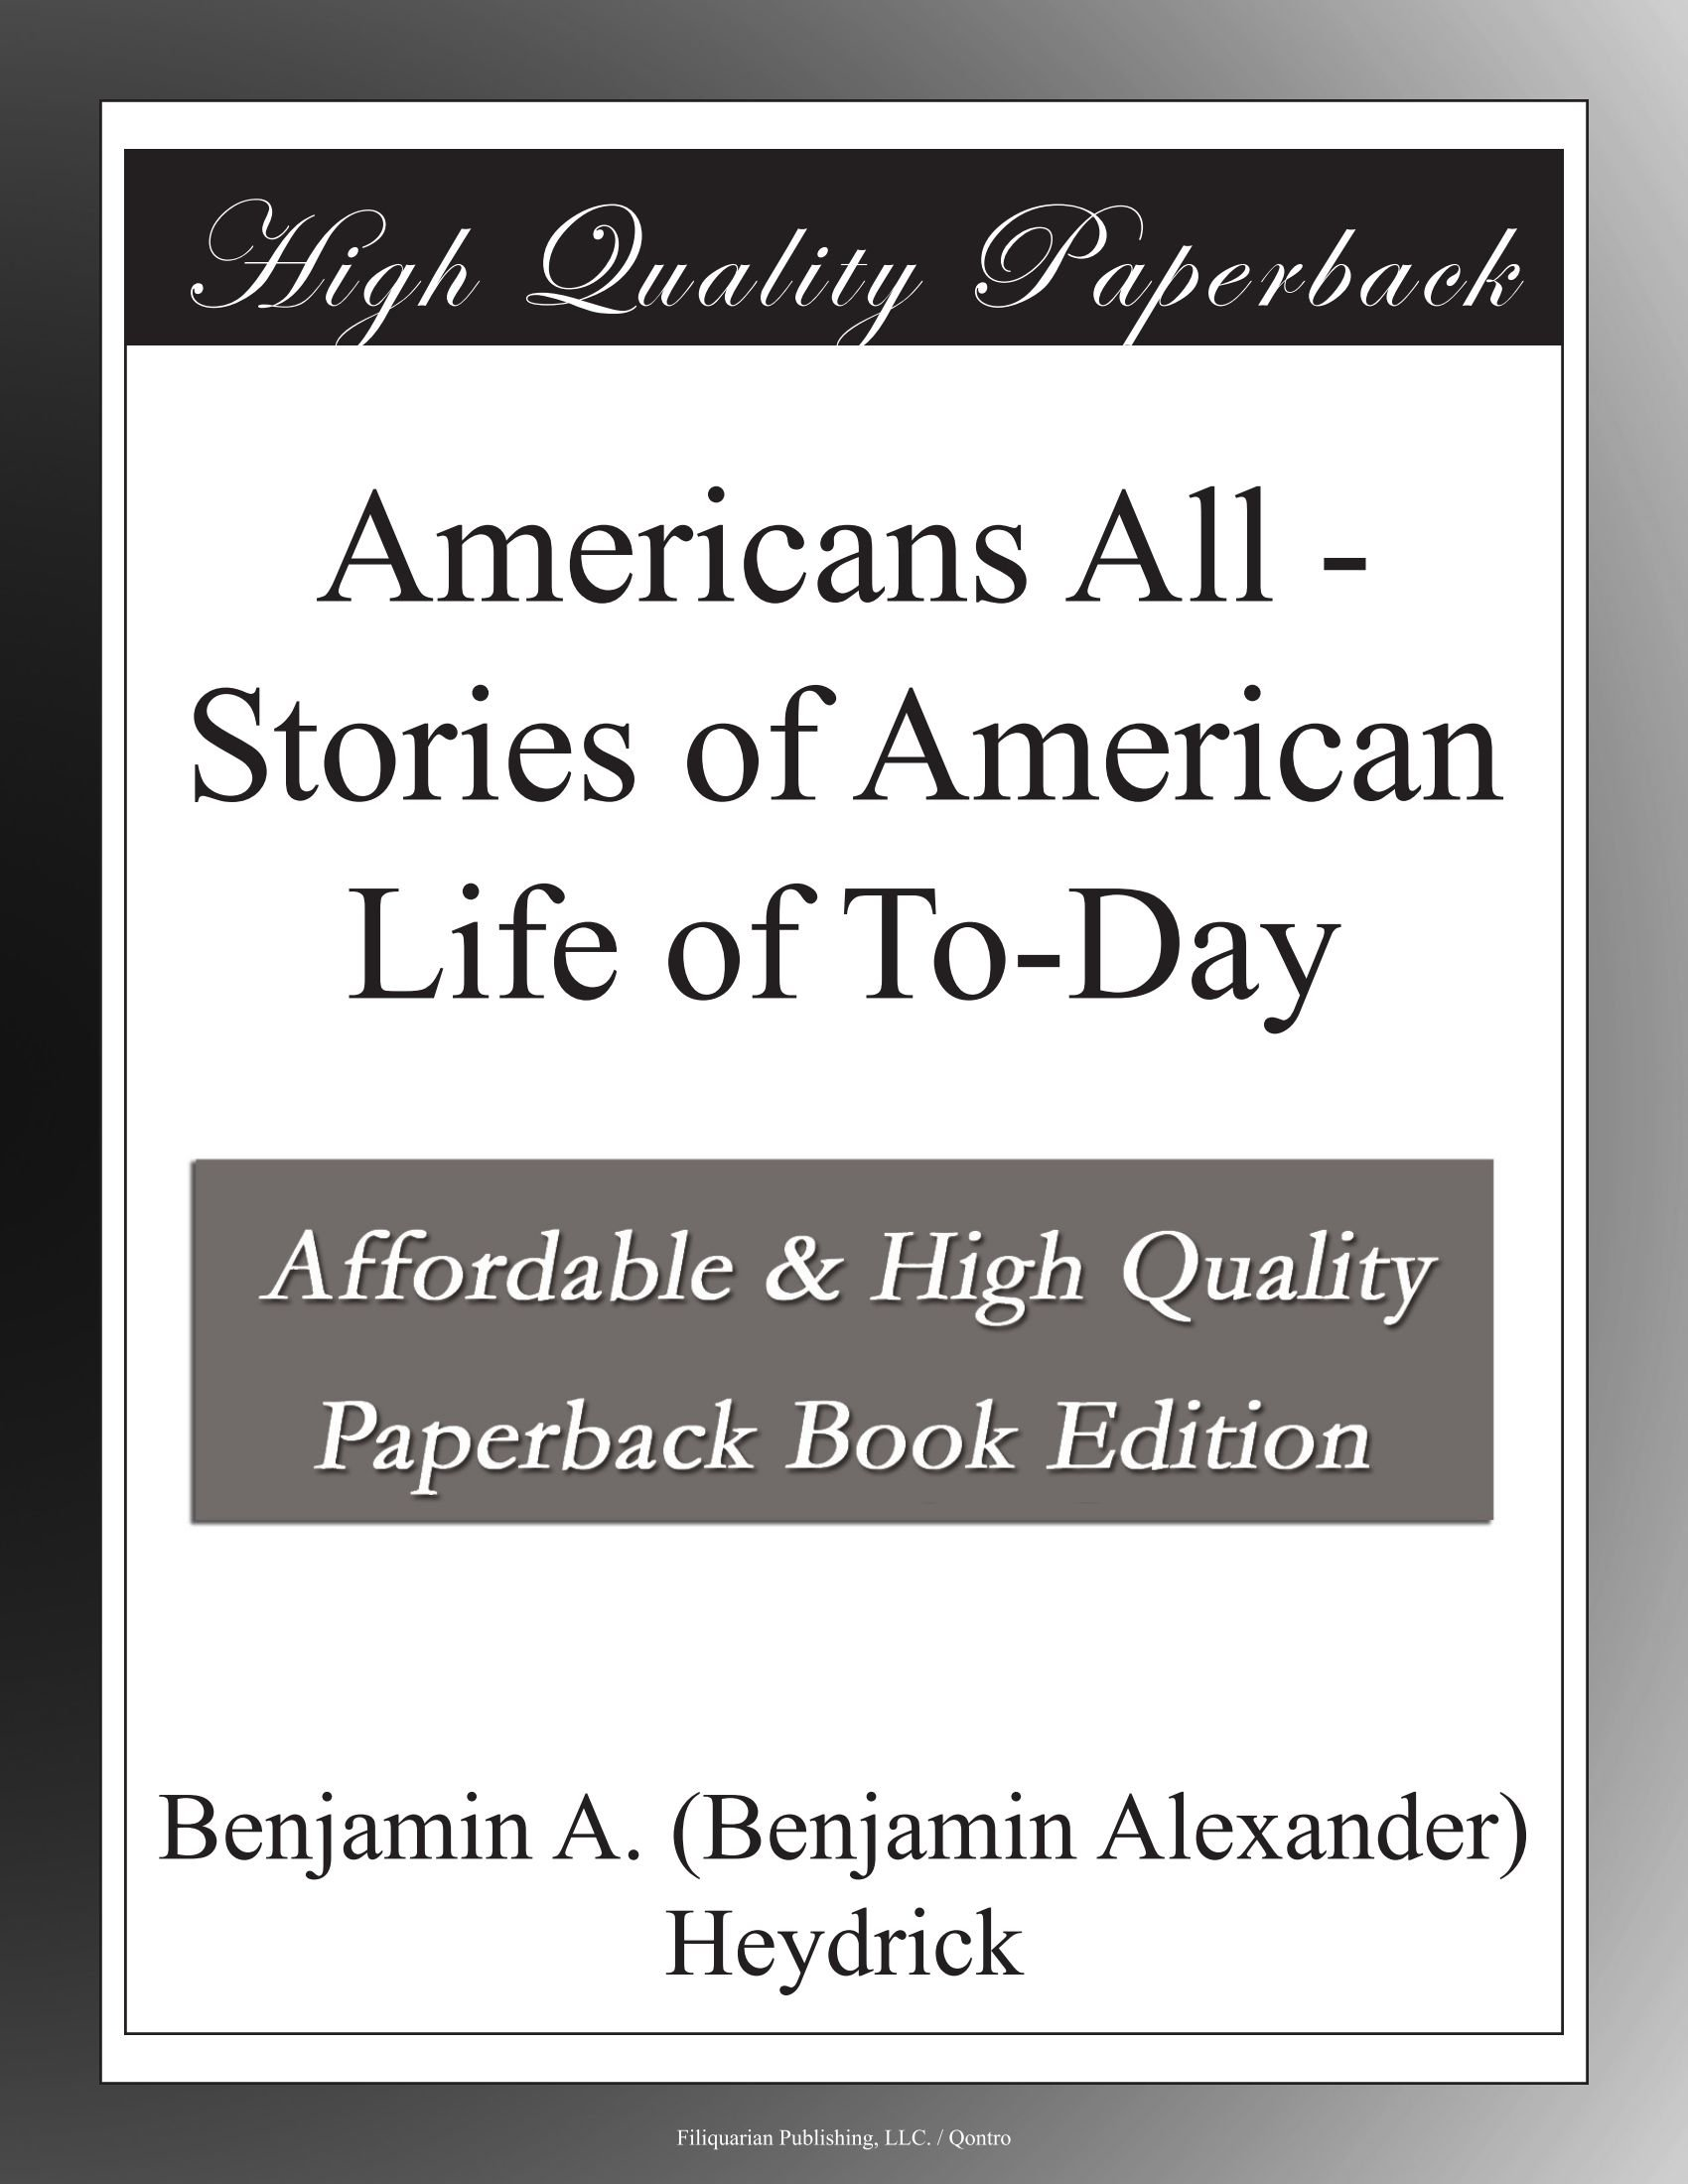 Americans All - Stories of American Life of To-Day pdf